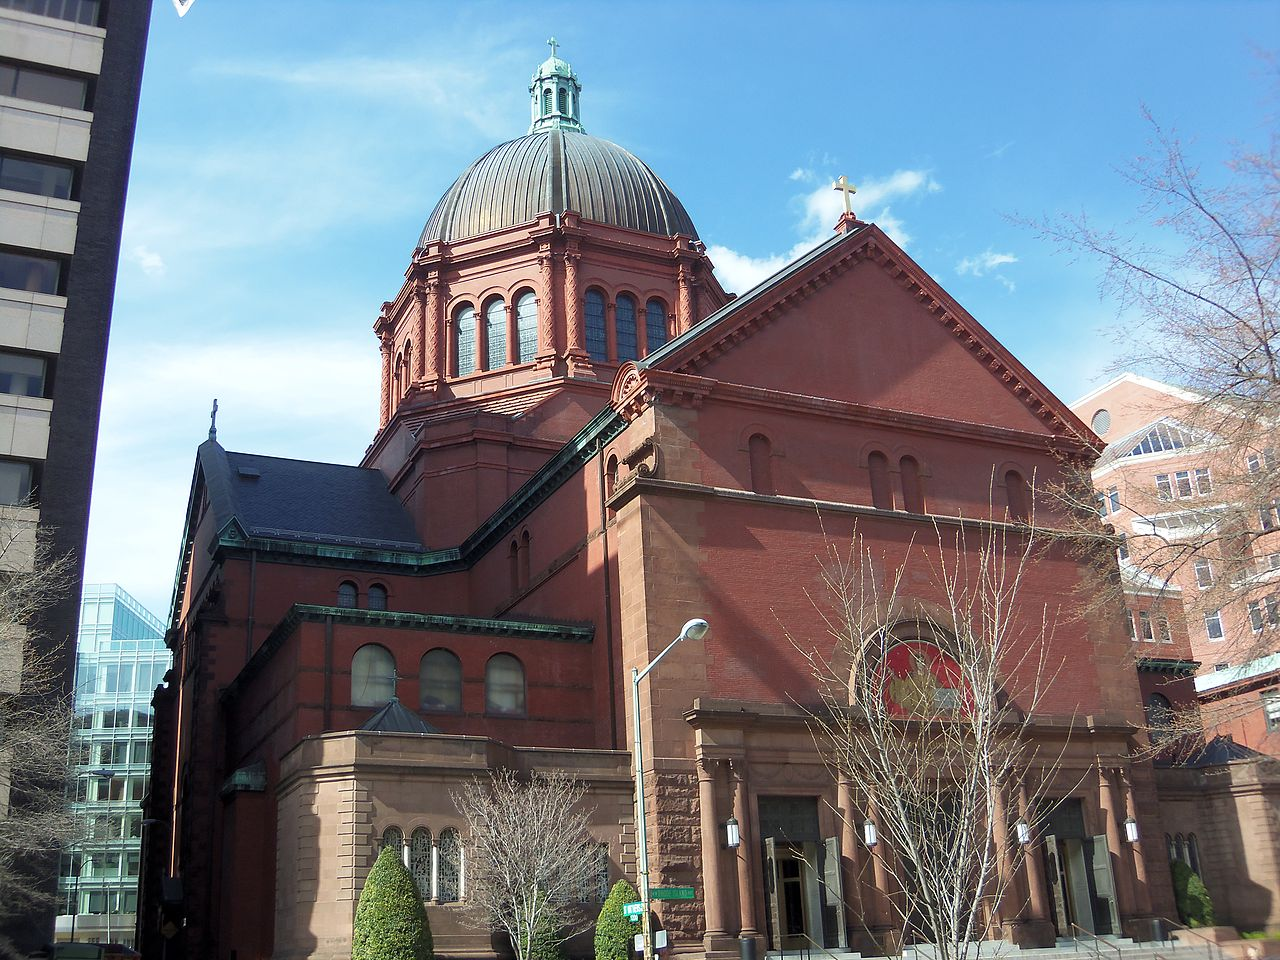 Cathedral of St. Matthew the Apostle, Washington, D.C. Image by Farragutful - Own work, CC BY-SA 3.0, https://commons.wikimedia.org/w/index.php?curid=25498152